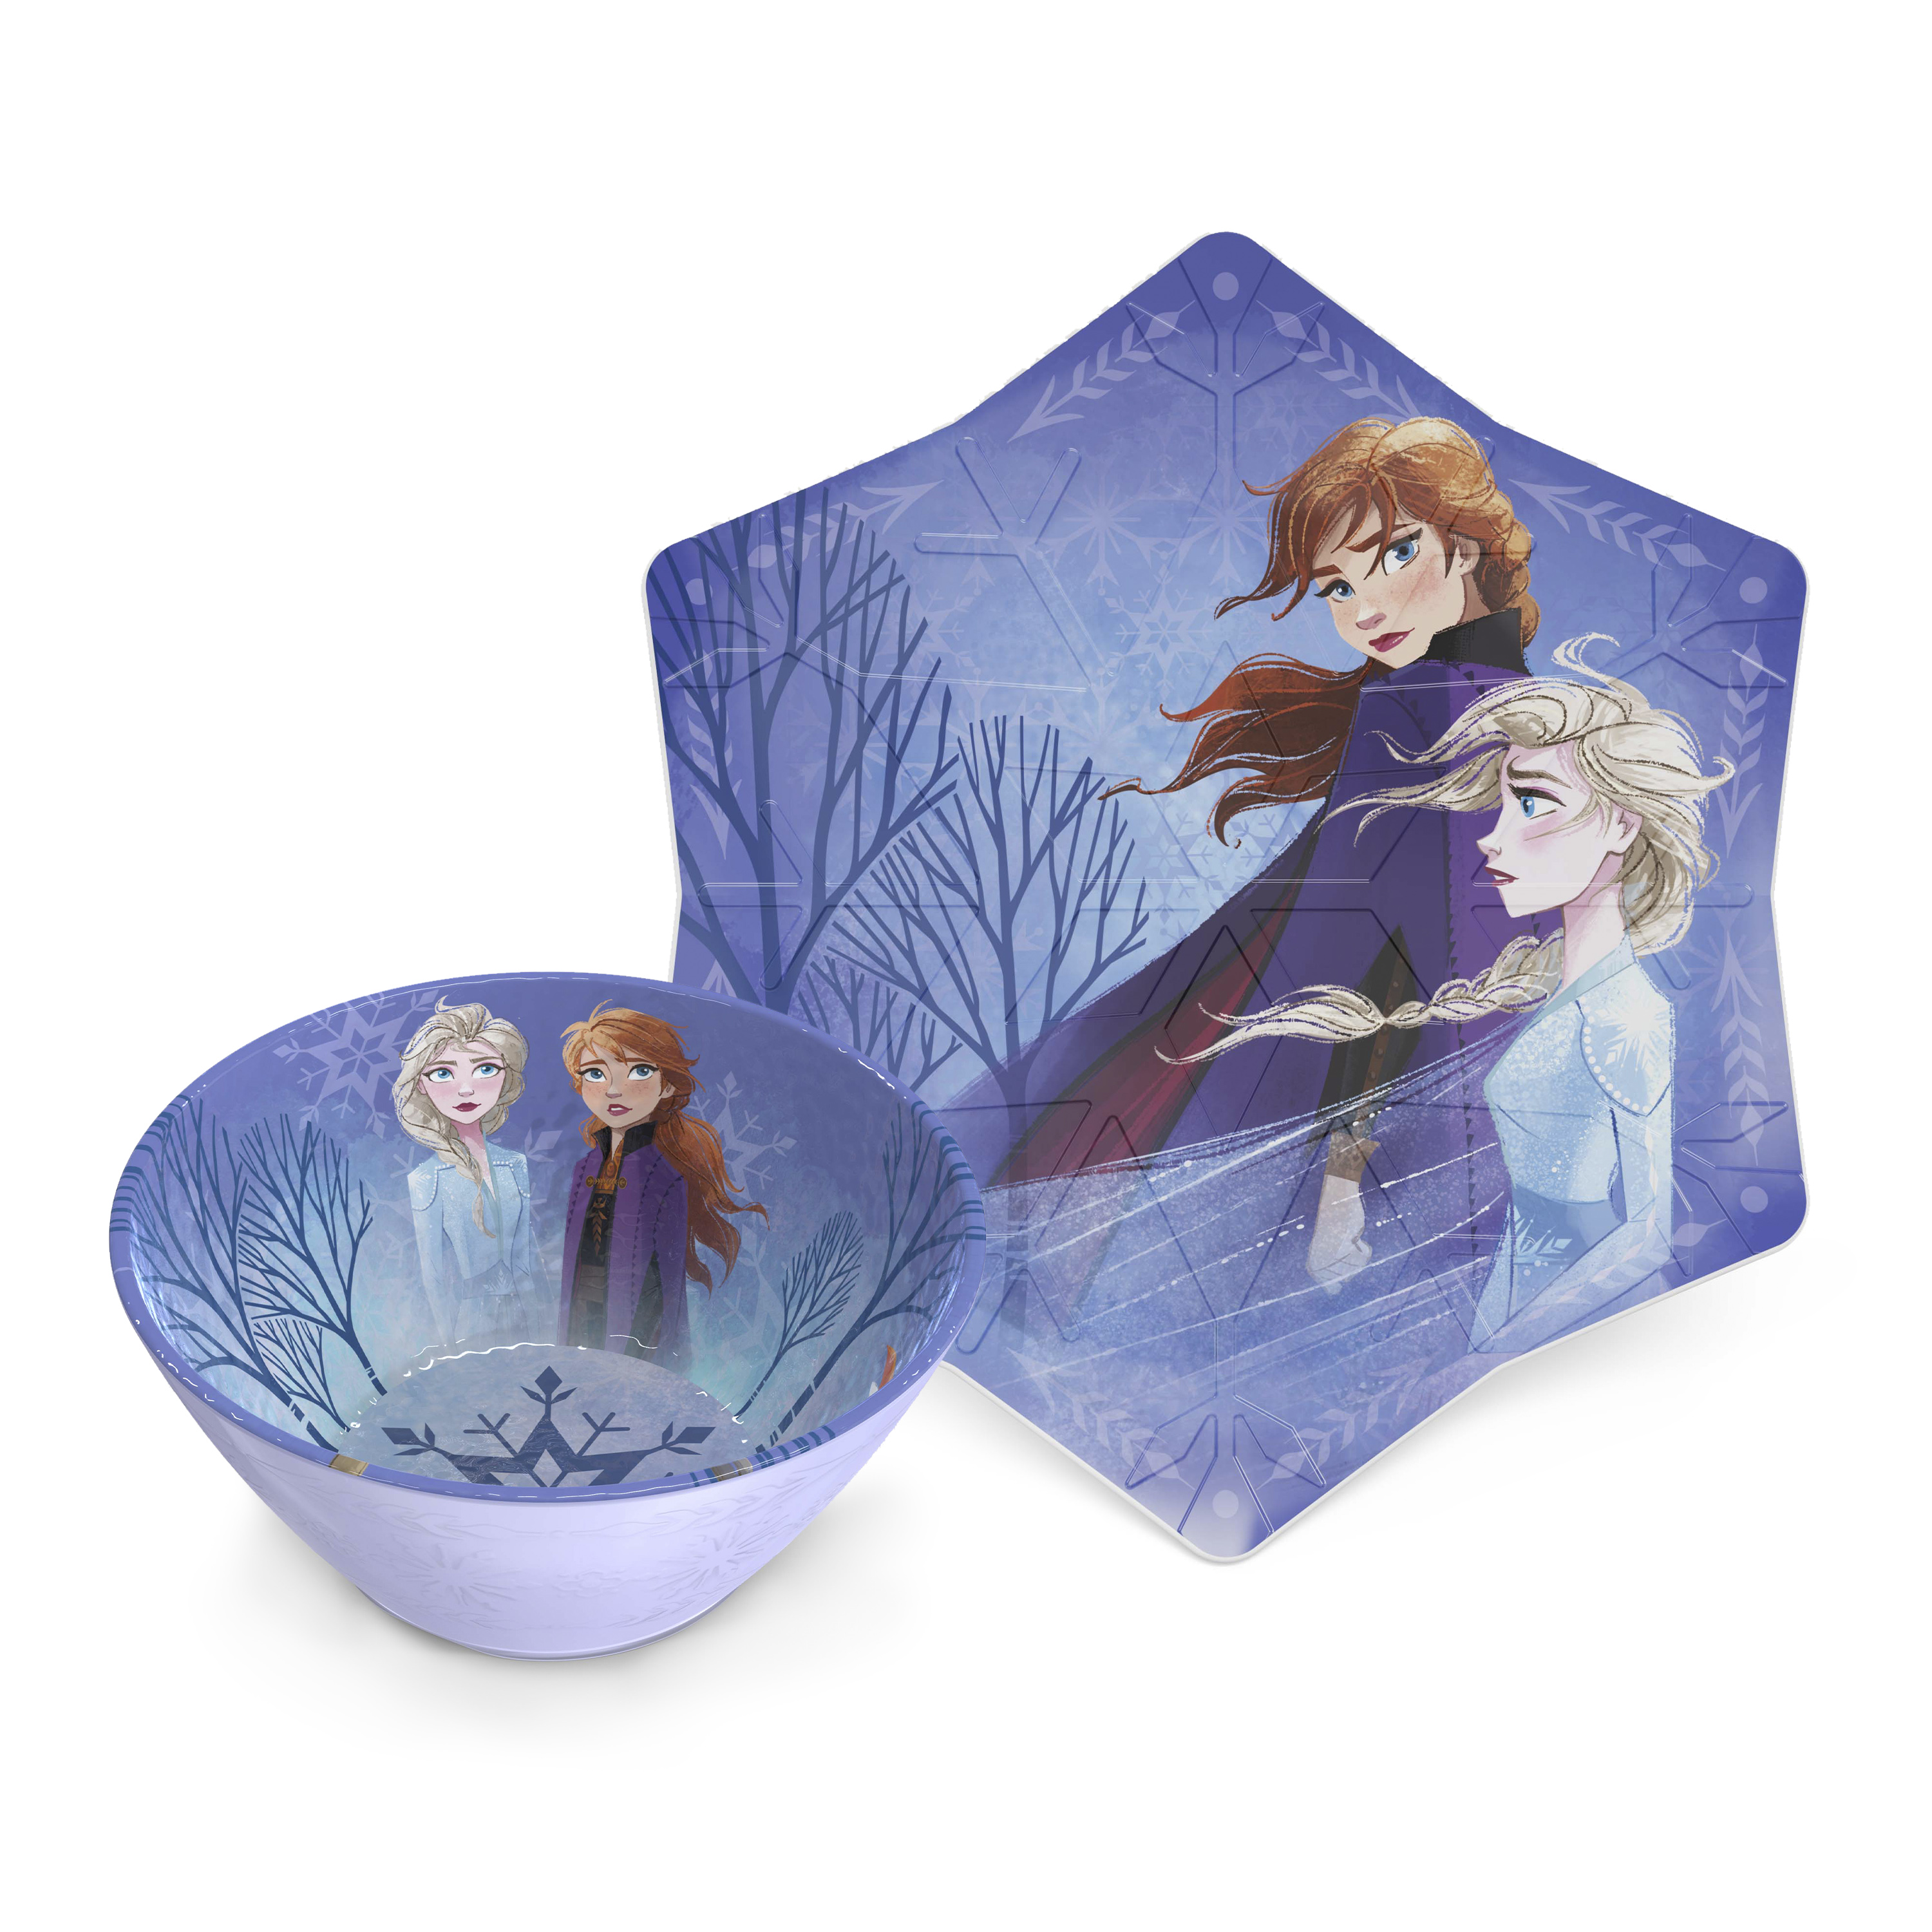 Disney Frozen 2 Movie Kid's Dinnerware Set, Anna and Elsa, 2-piece set slideshow image 2